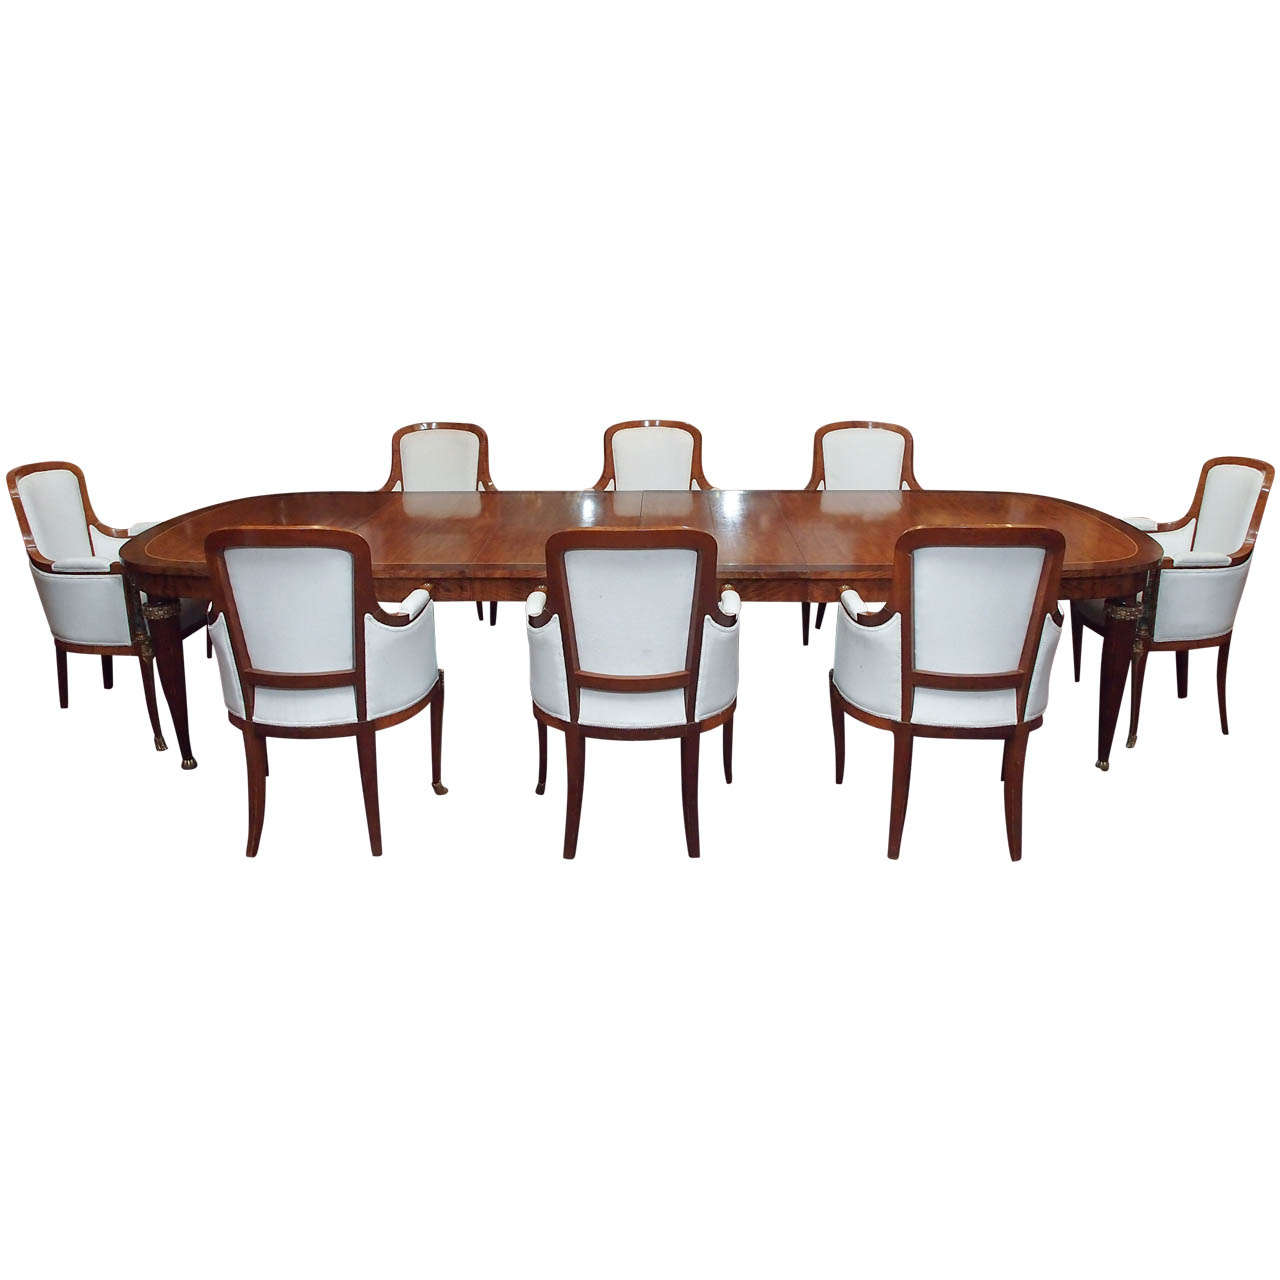 antique exceptional french dining set circa 1920 table and chairs at 1stdibs. Black Bedroom Furniture Sets. Home Design Ideas